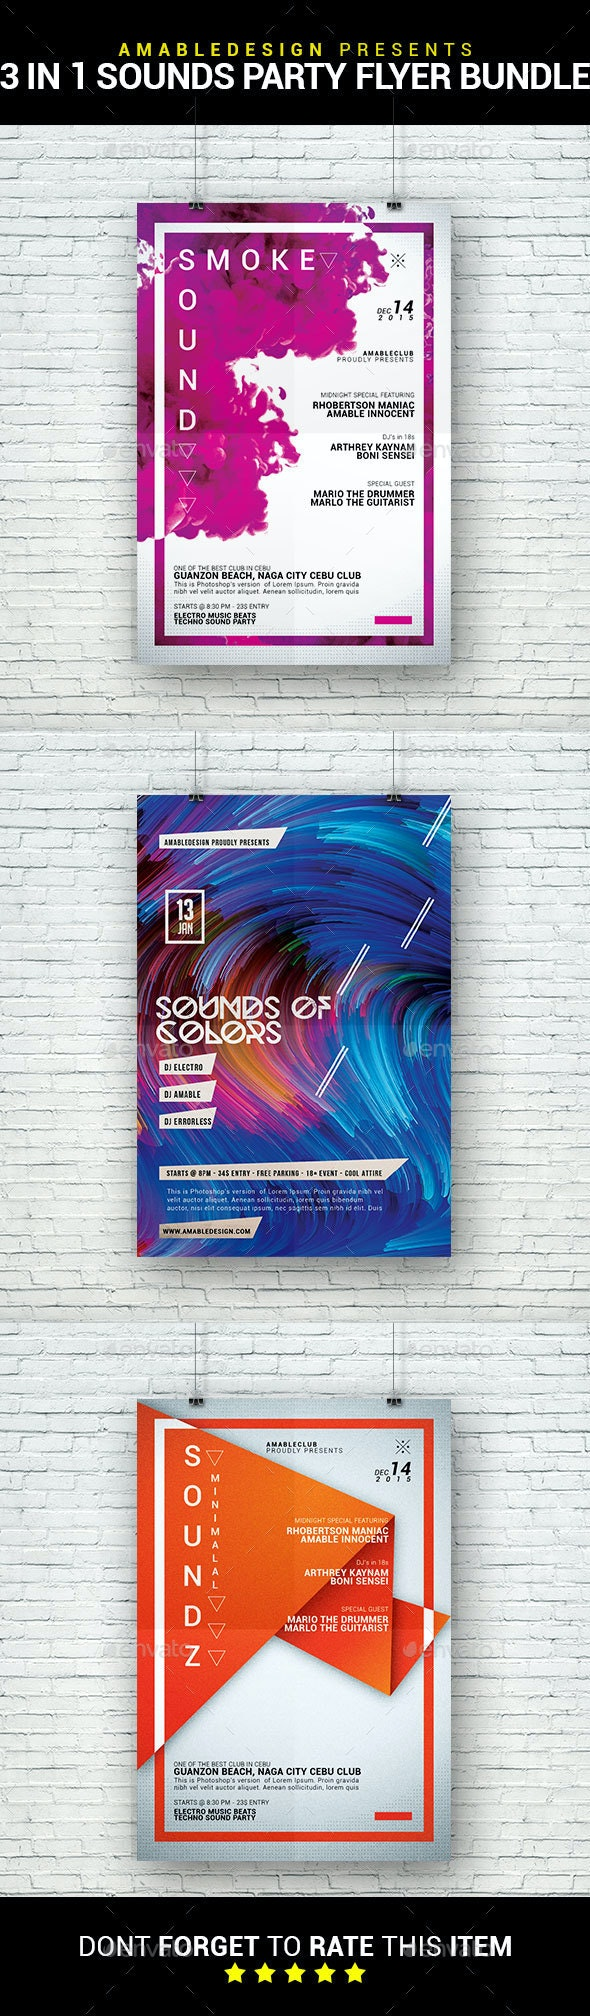 3 in 1 Sounds Party Flyer/Poster Bundle - Clubs & Parties Events